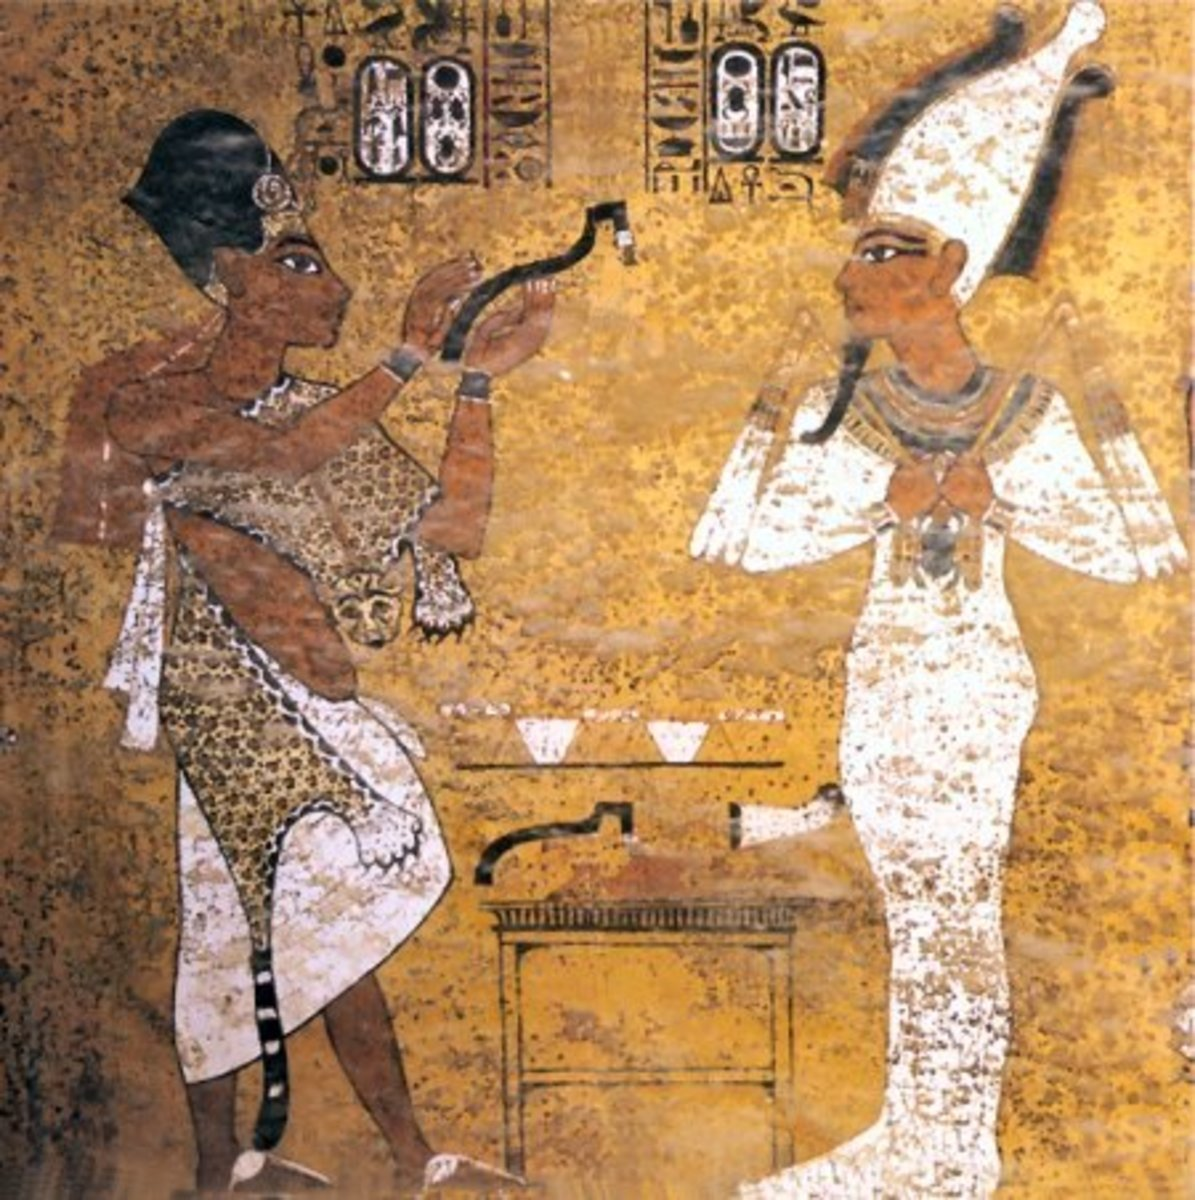 Opening of the Mouth - Painting from KV62 Tomb of Tutankhamun